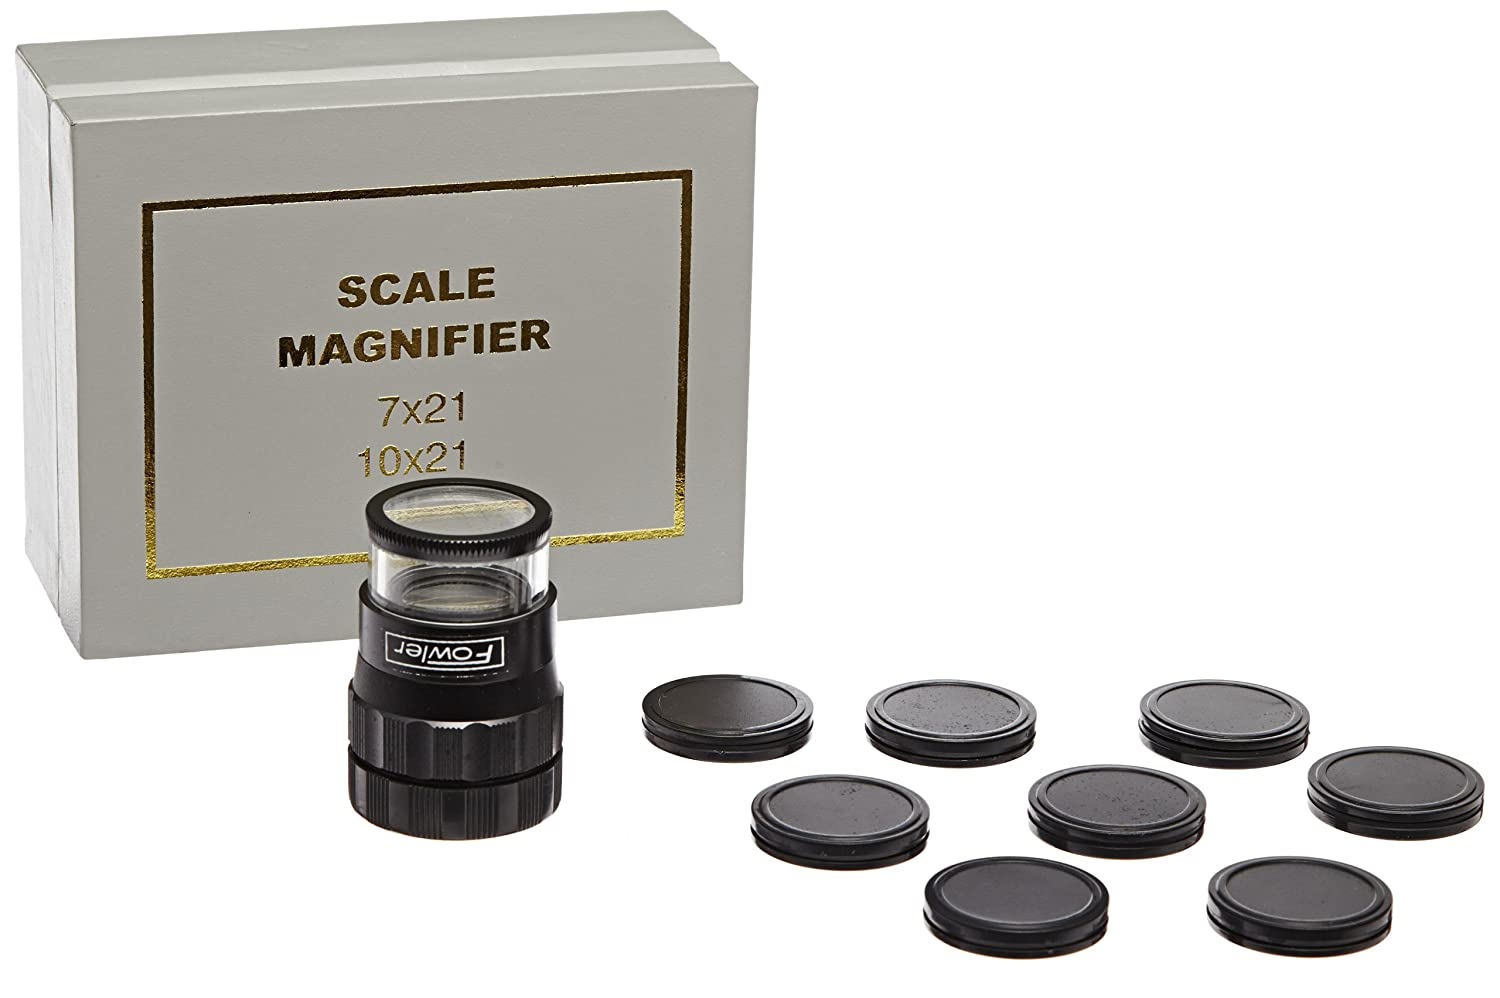 Fowler 52-664-009 Pocket Optical Comparators, 10X Magnification Fred V. Fowler Company Inc. 52-664-009-0